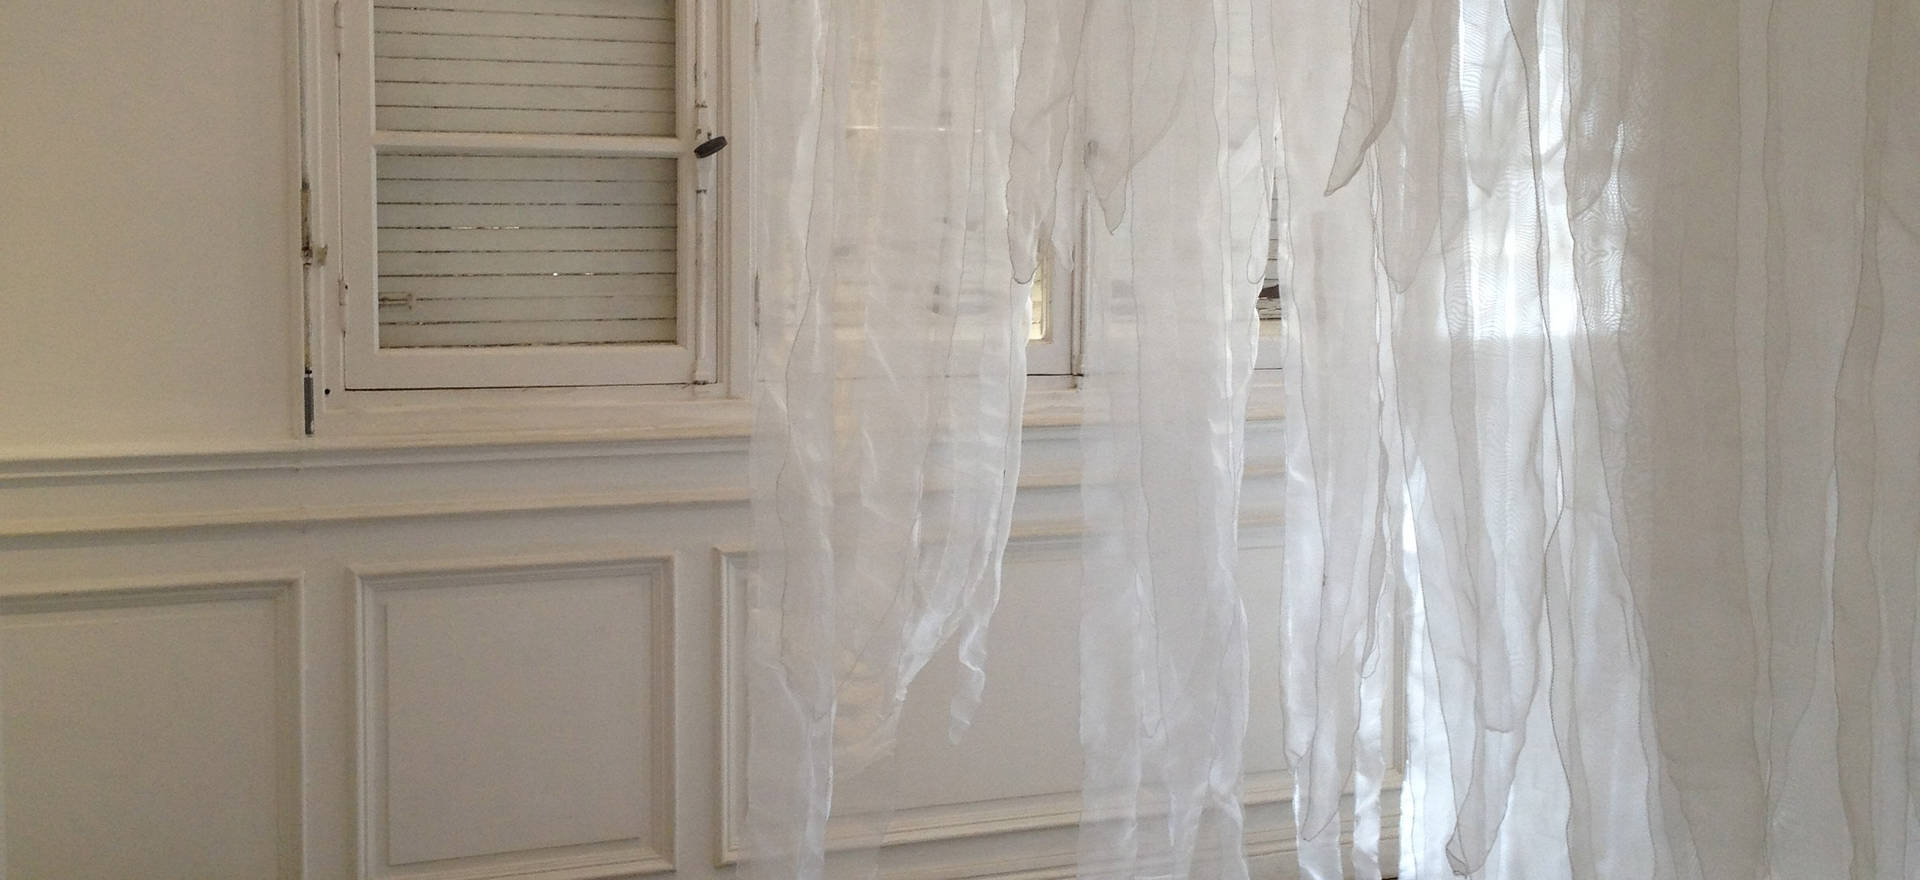 Sudden downpour, 2013 Penetrable installation. Organza fabric. 10.49 x 6.56 ft. 3.20 x 2 x 2 m,